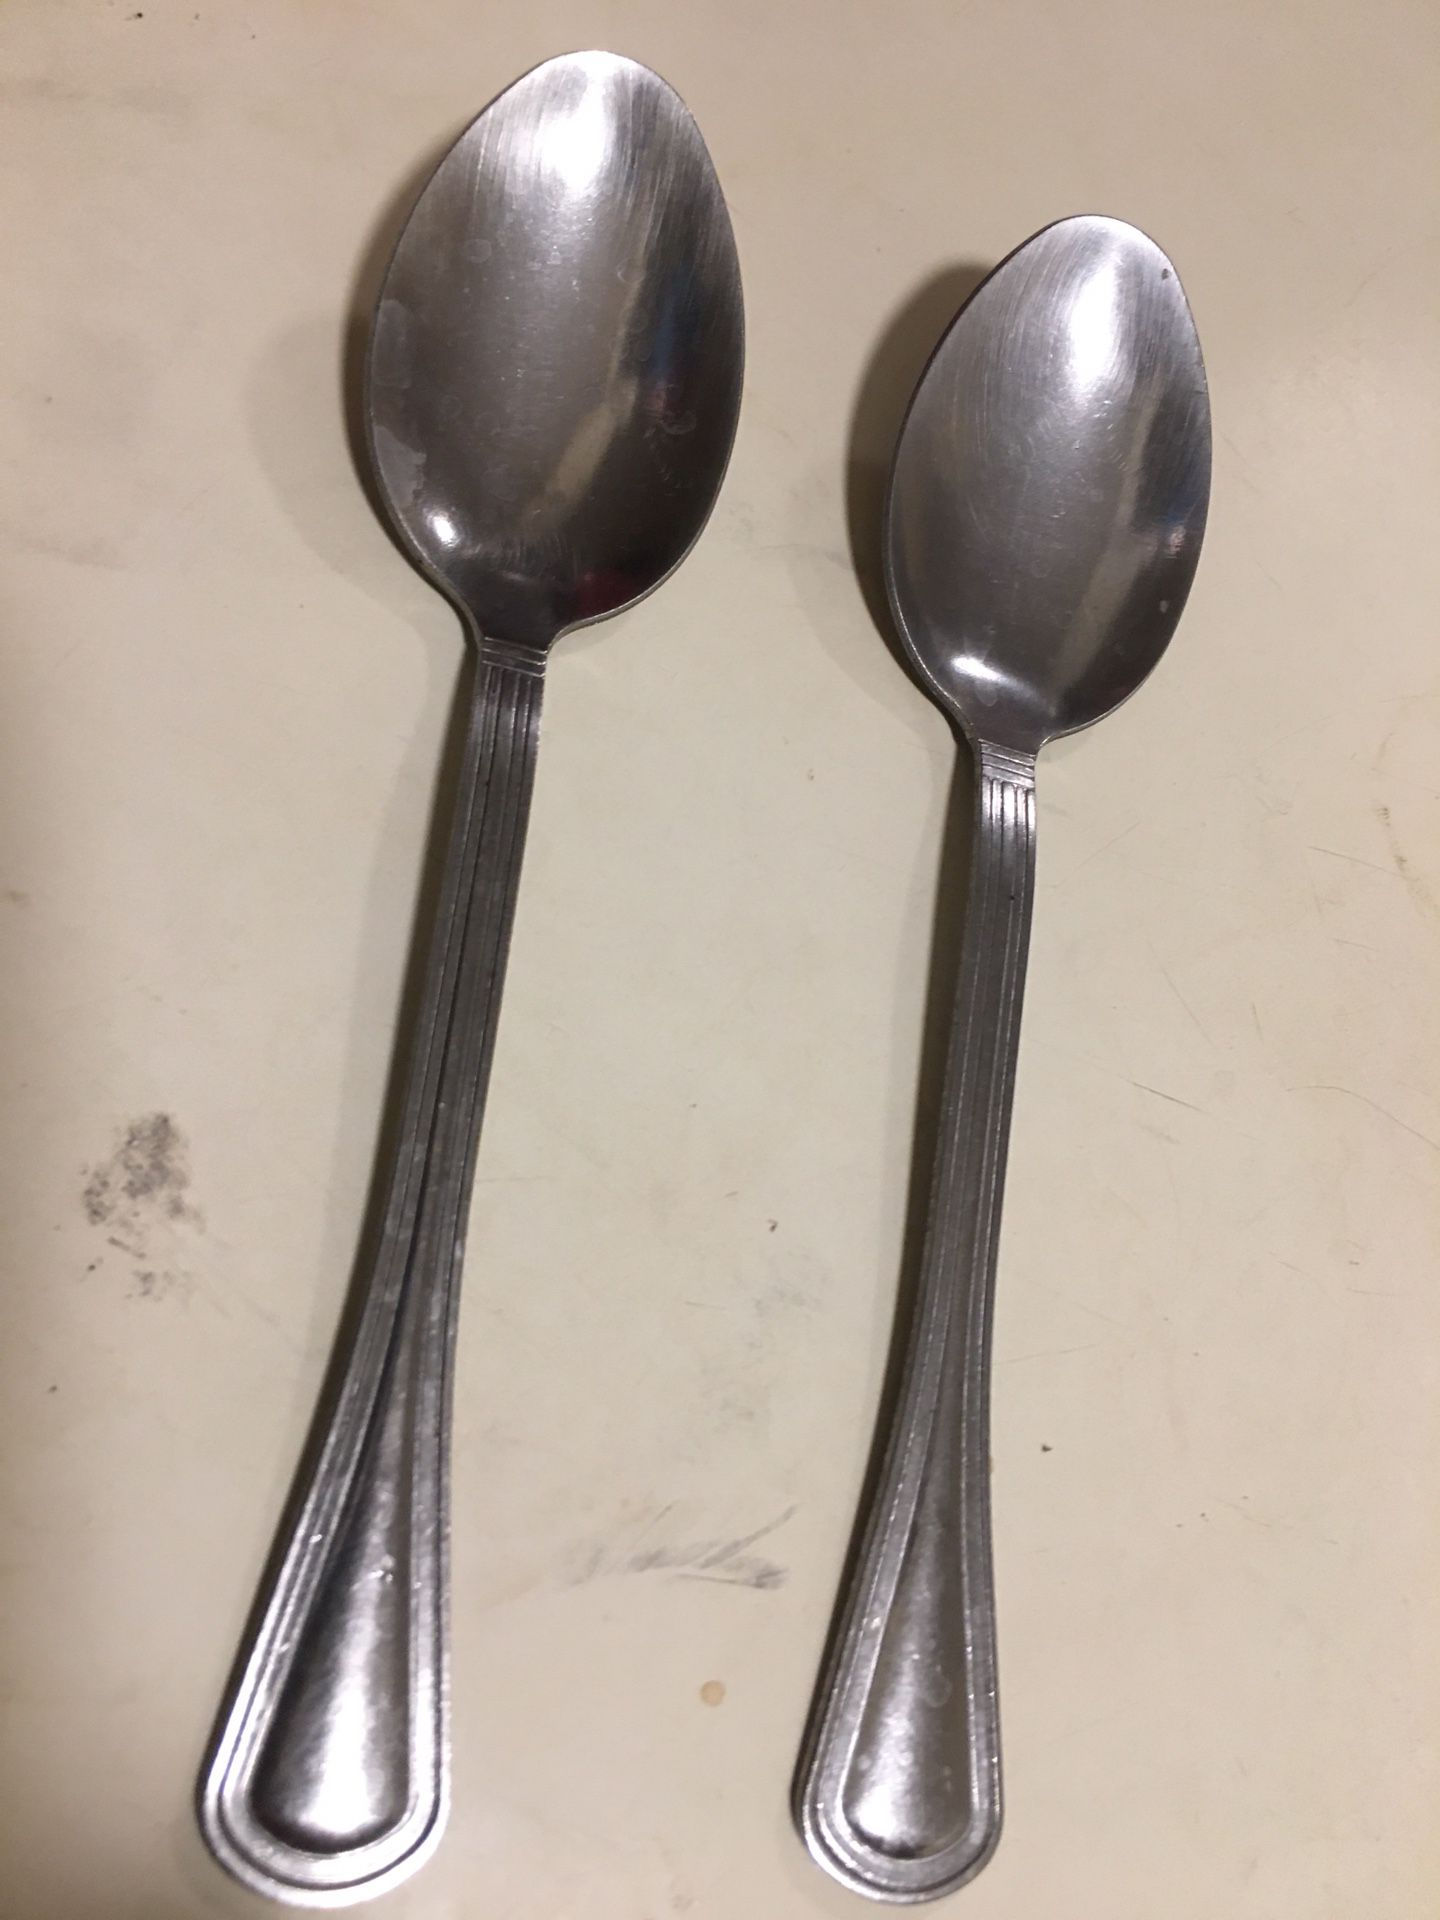 Spoon for free with any purchase